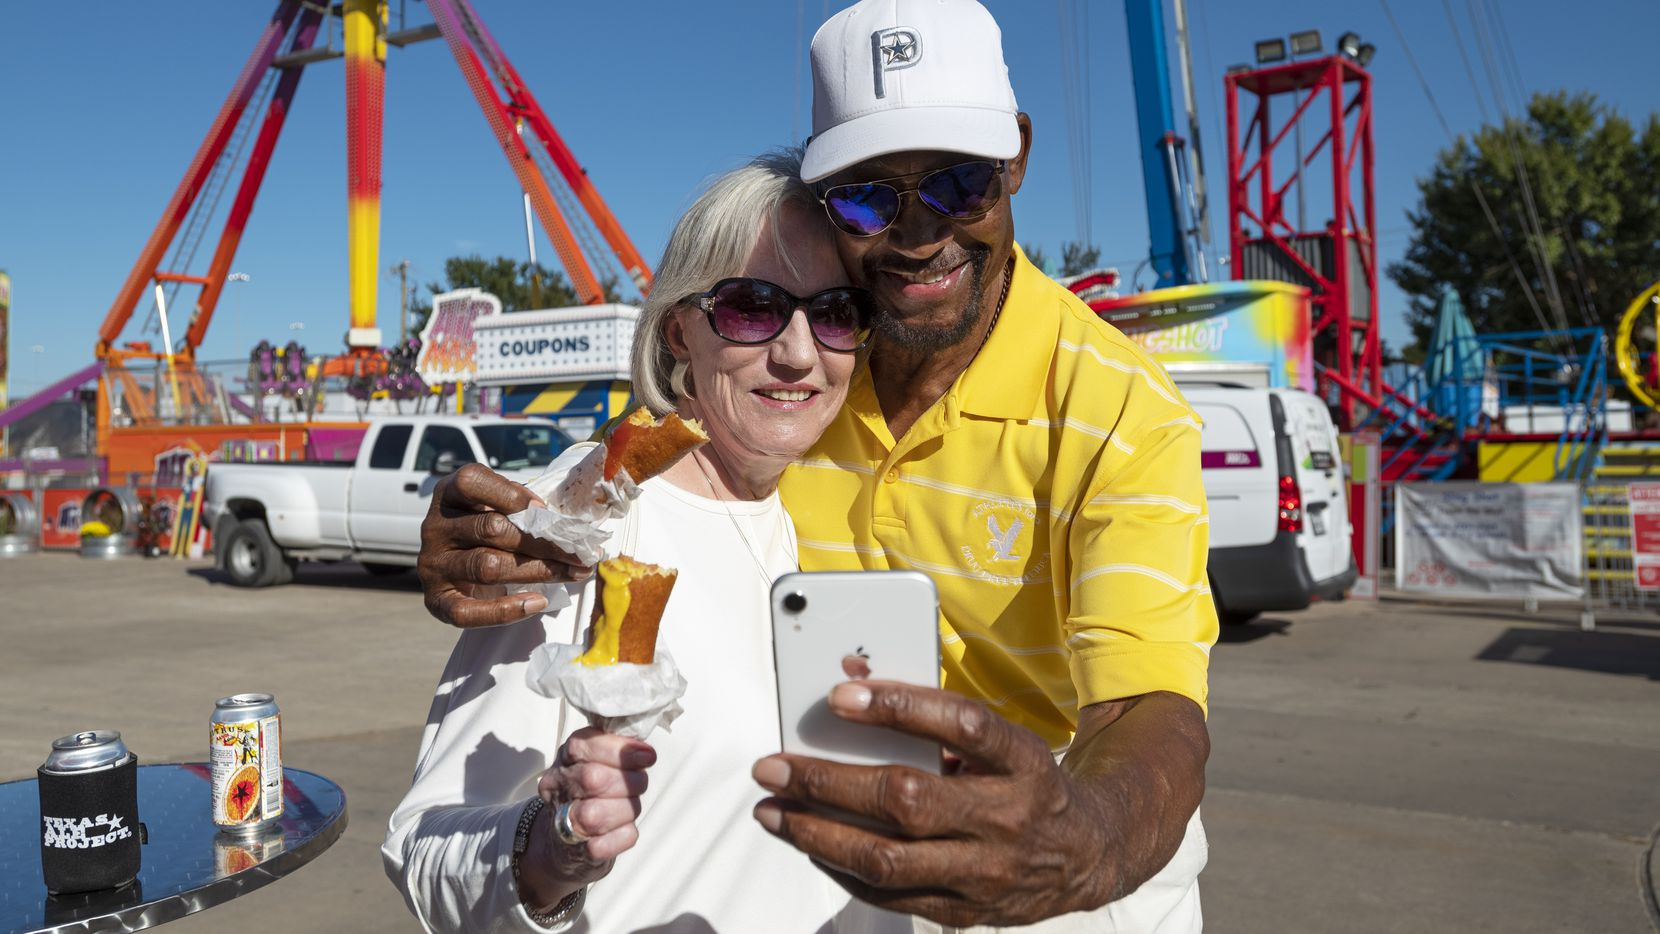 Carole Rhodes and Preston Pearson take a selfie together with their Fletcher's Corny Dogs at the State Fair of Texas during a Dallas Morning News food event for subscribers on Thursday, Sept. 23, 2021.